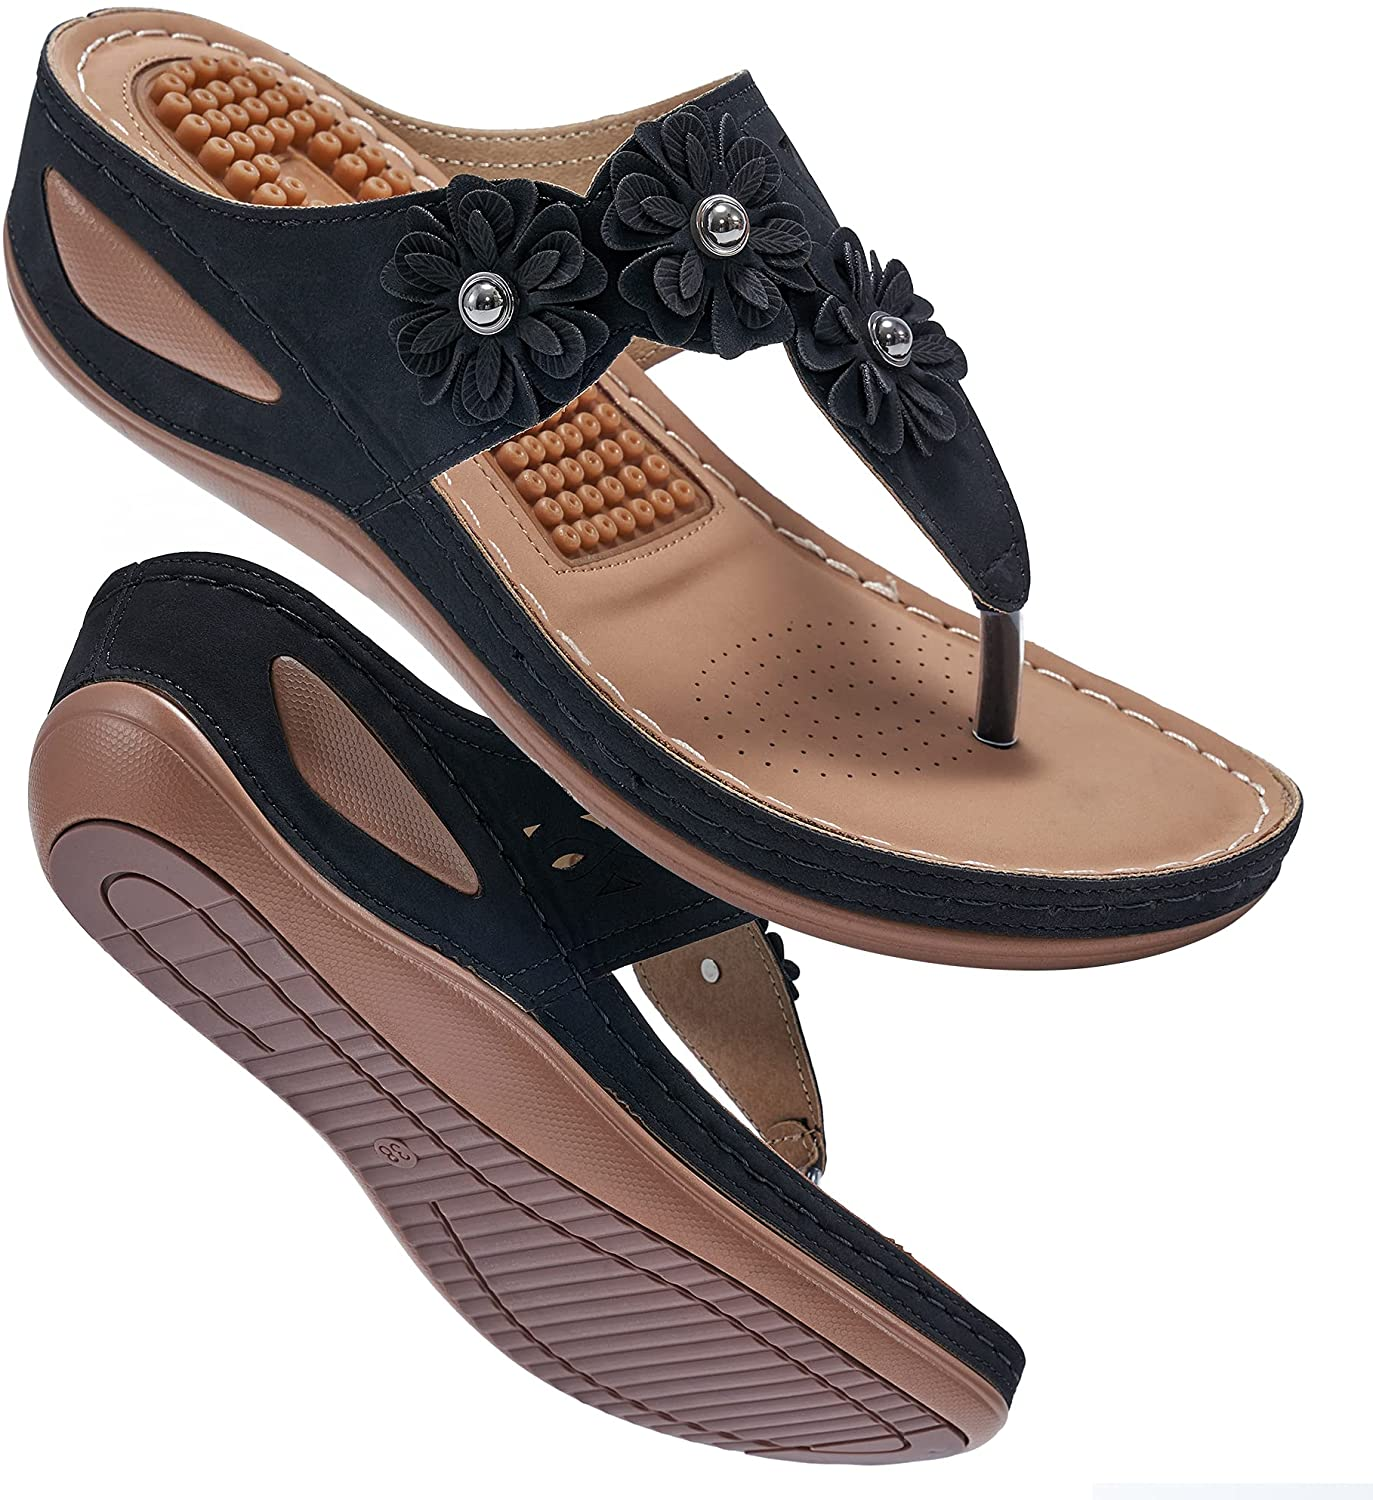 Womens Wedge Flip Flops Sandals latest OFFicial shop with Comfort Support Arch Summer